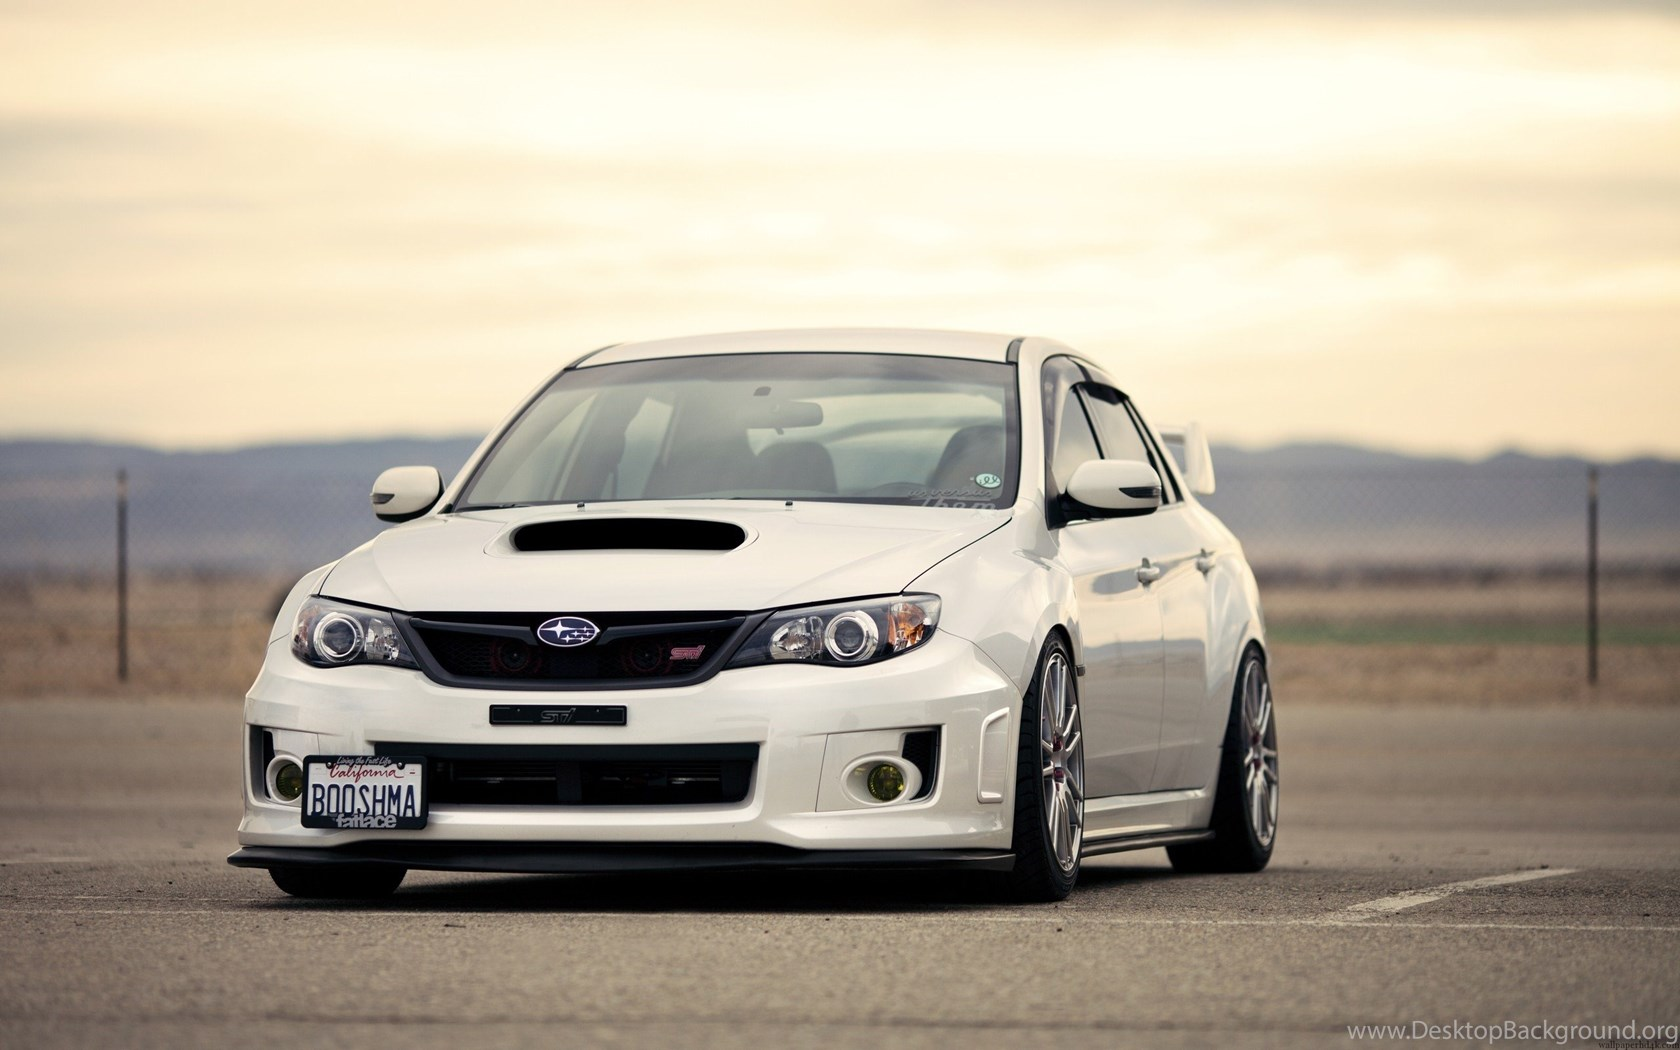 Subaru Impreza Wrx Sti Photo Hd Wallpapers Wallpapers Hd